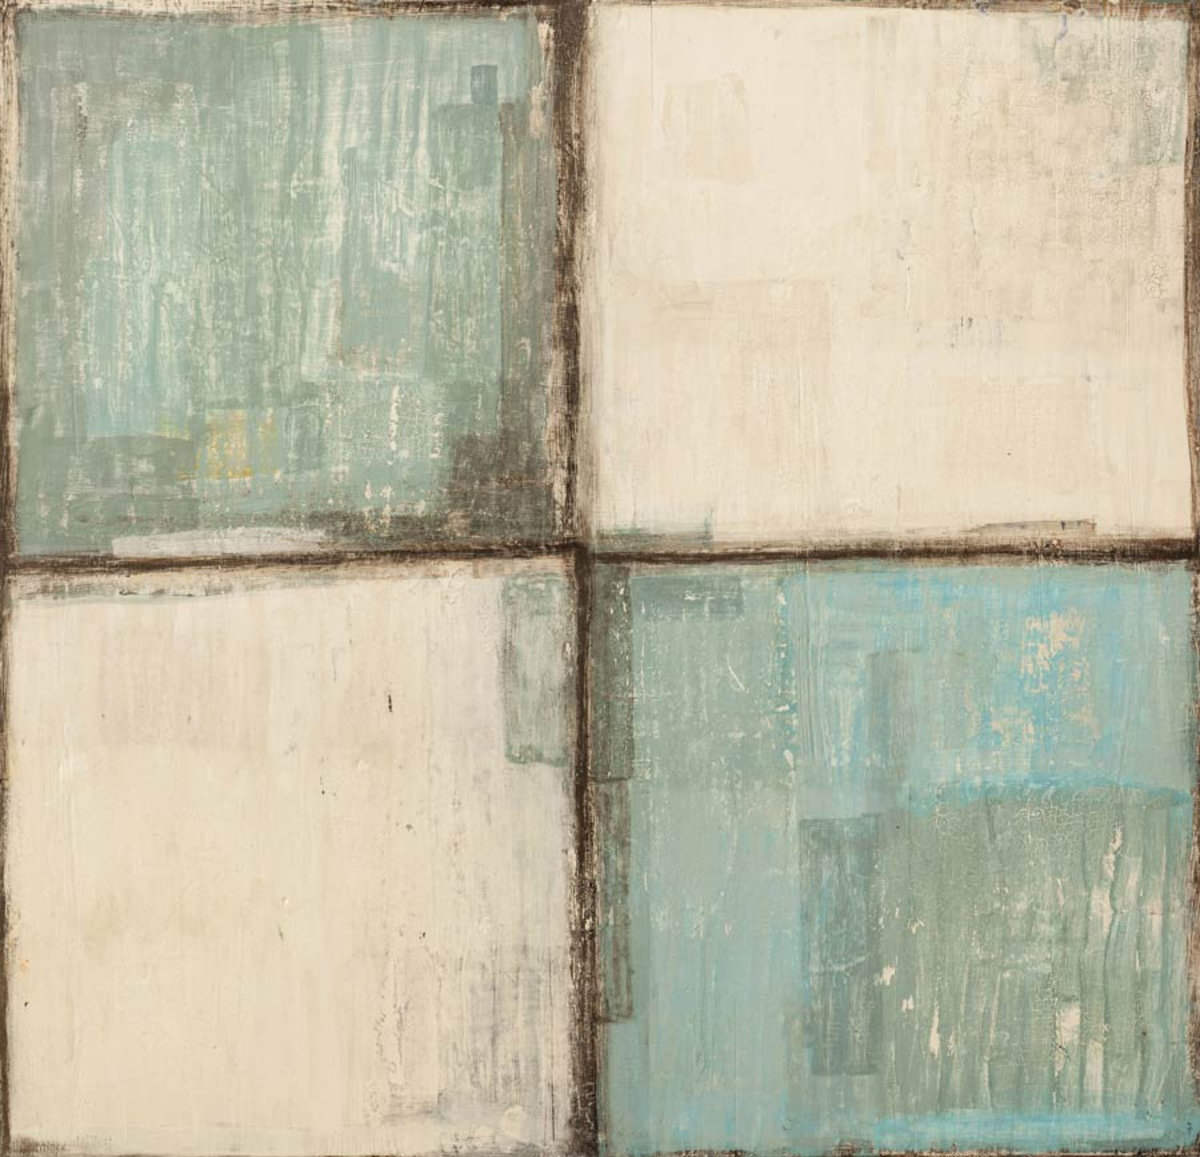 Four squares, two white and two gray-blue neatly arranged